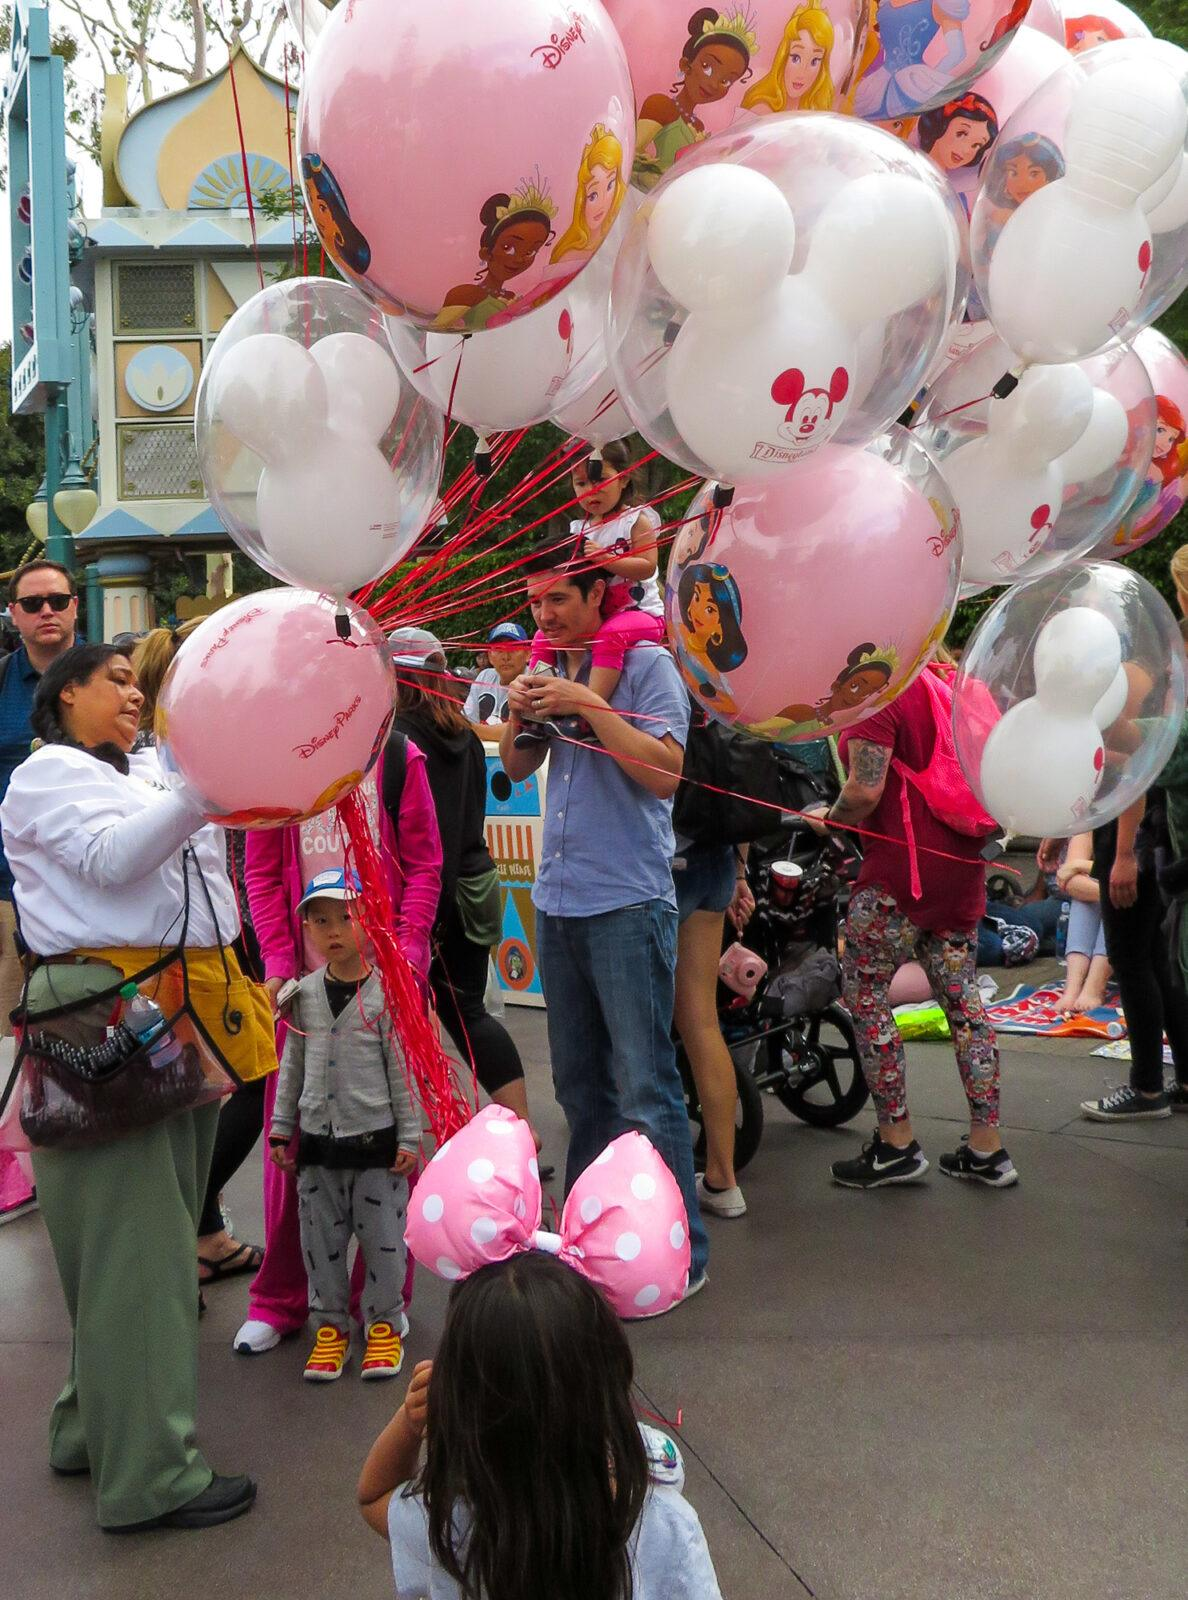 Balloons for sale at Disneyland with kids